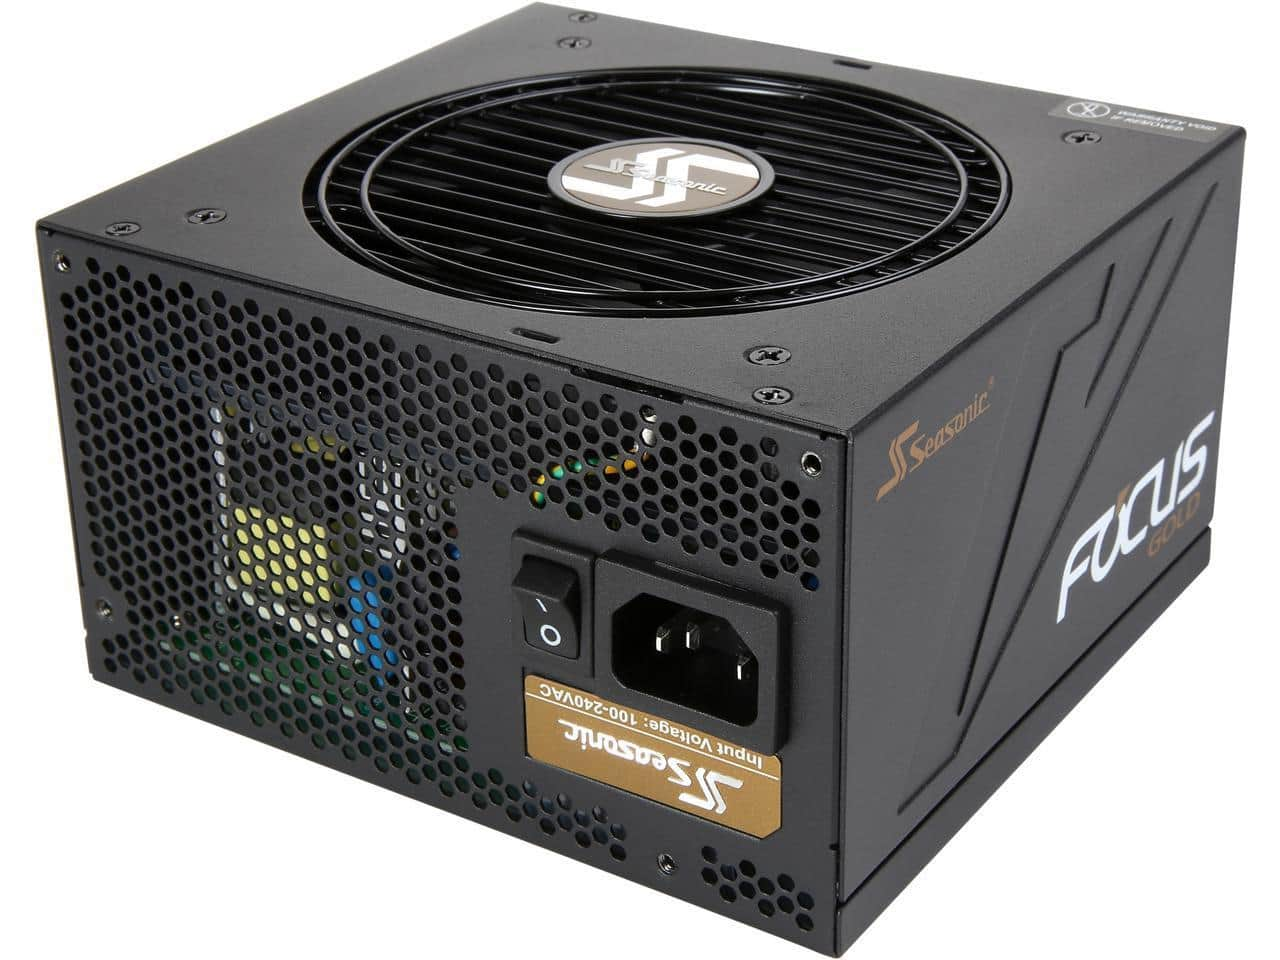 550W Seasonic FOCUS Series 80 Plus Gold Semi-Modular Power Supply (SSR-550FM) for $49.99 AR + Free Ship @ Newegg